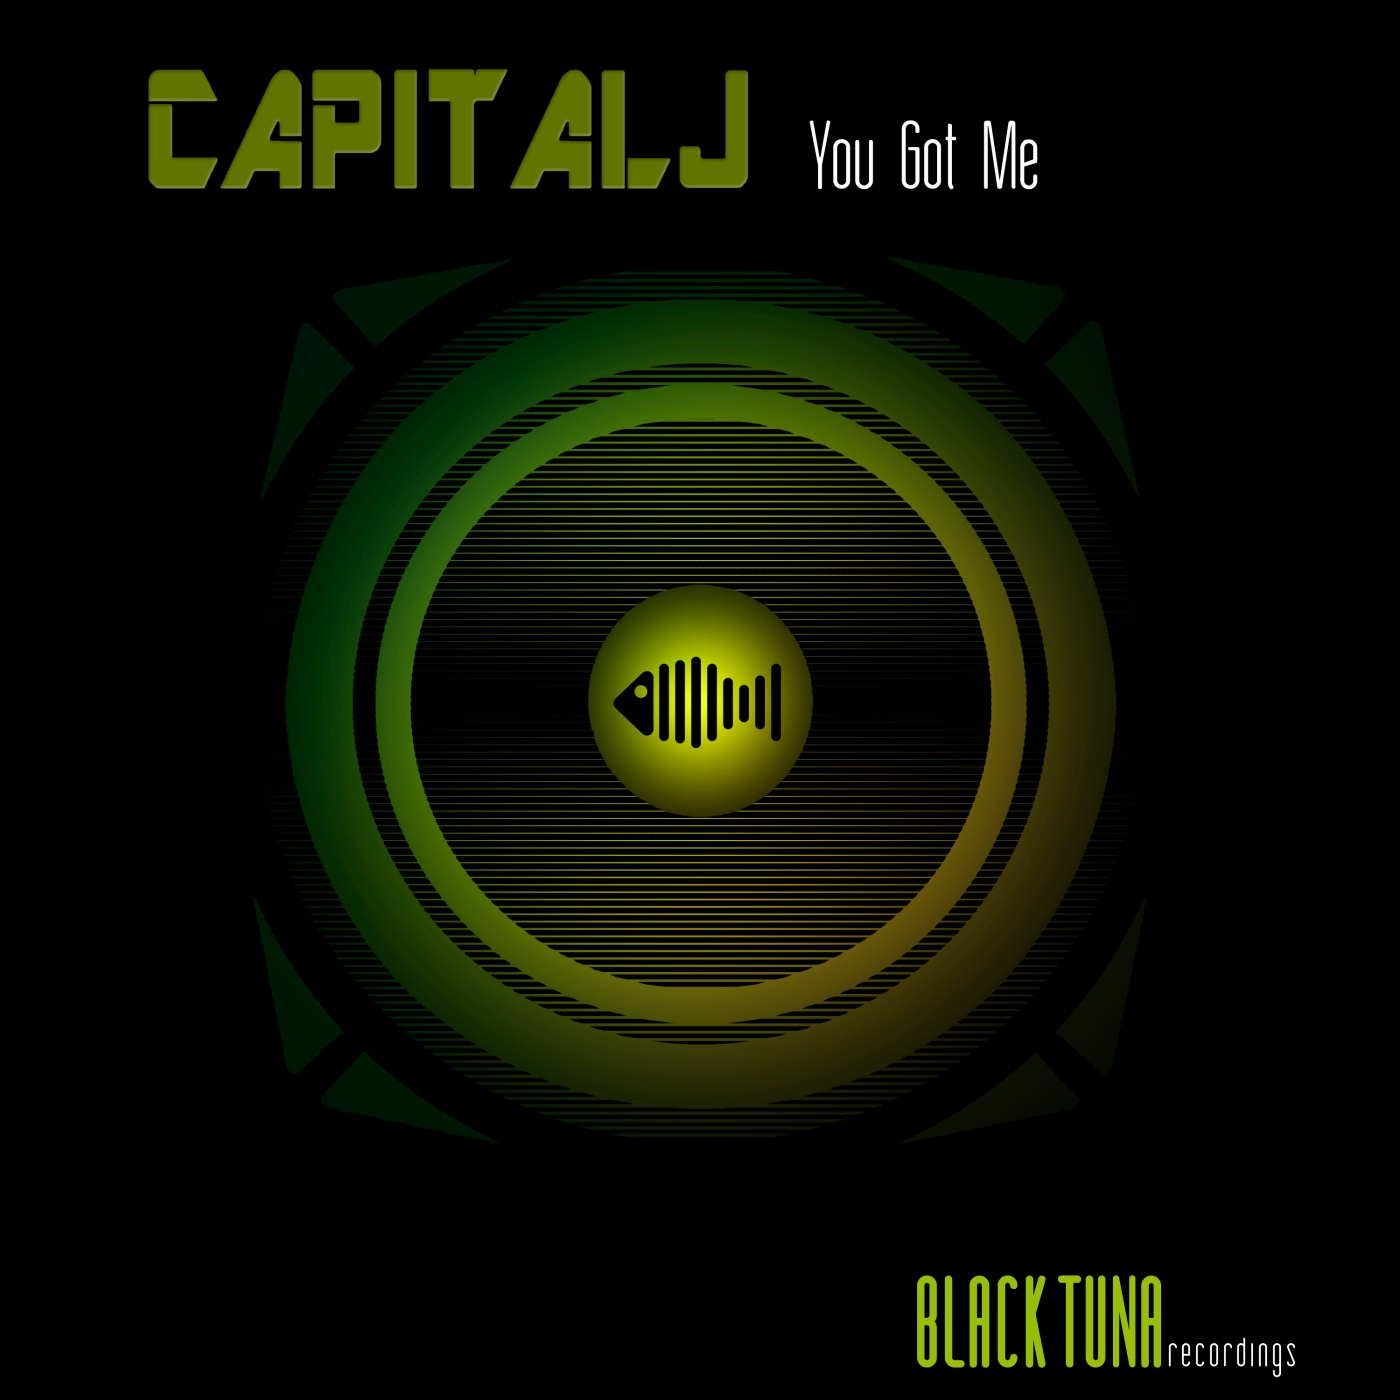 BTR018 - Captial J - You Got Me (Original Mix)